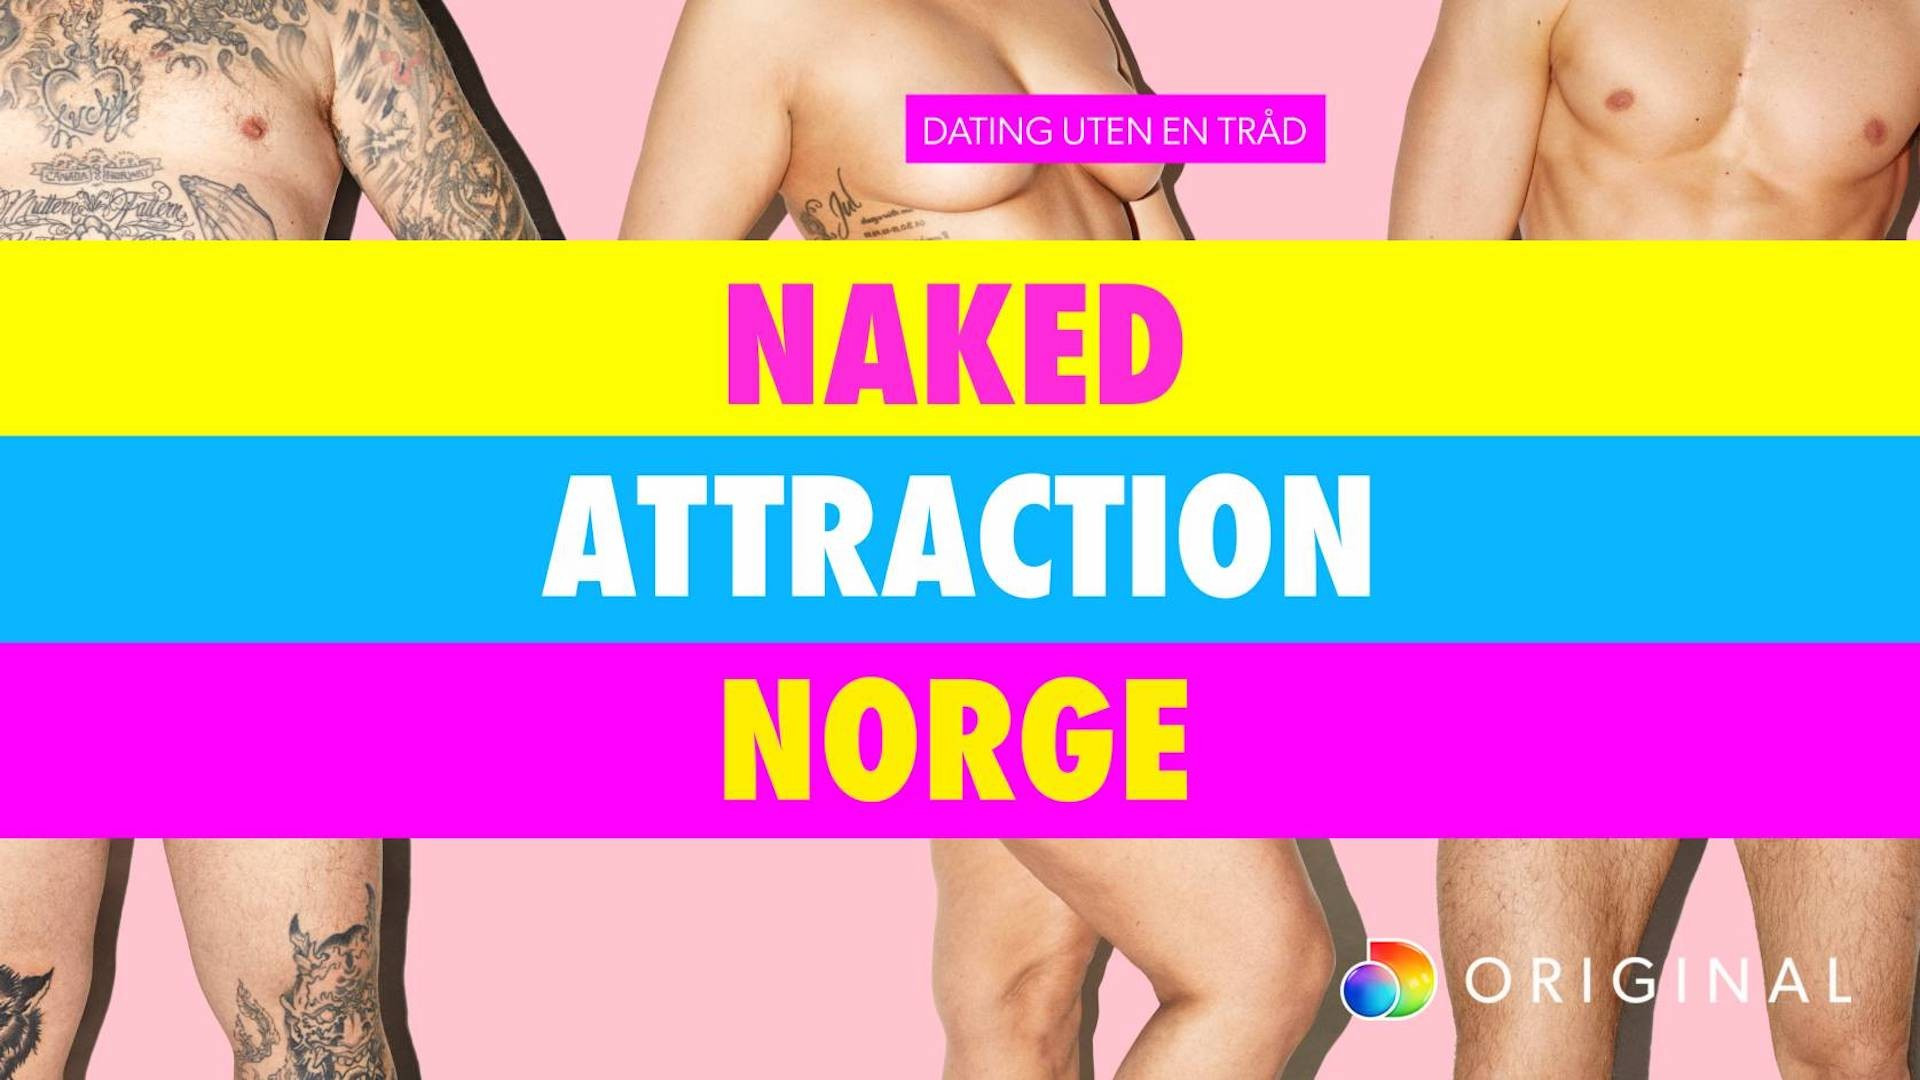 Show Naked Attraction Norge